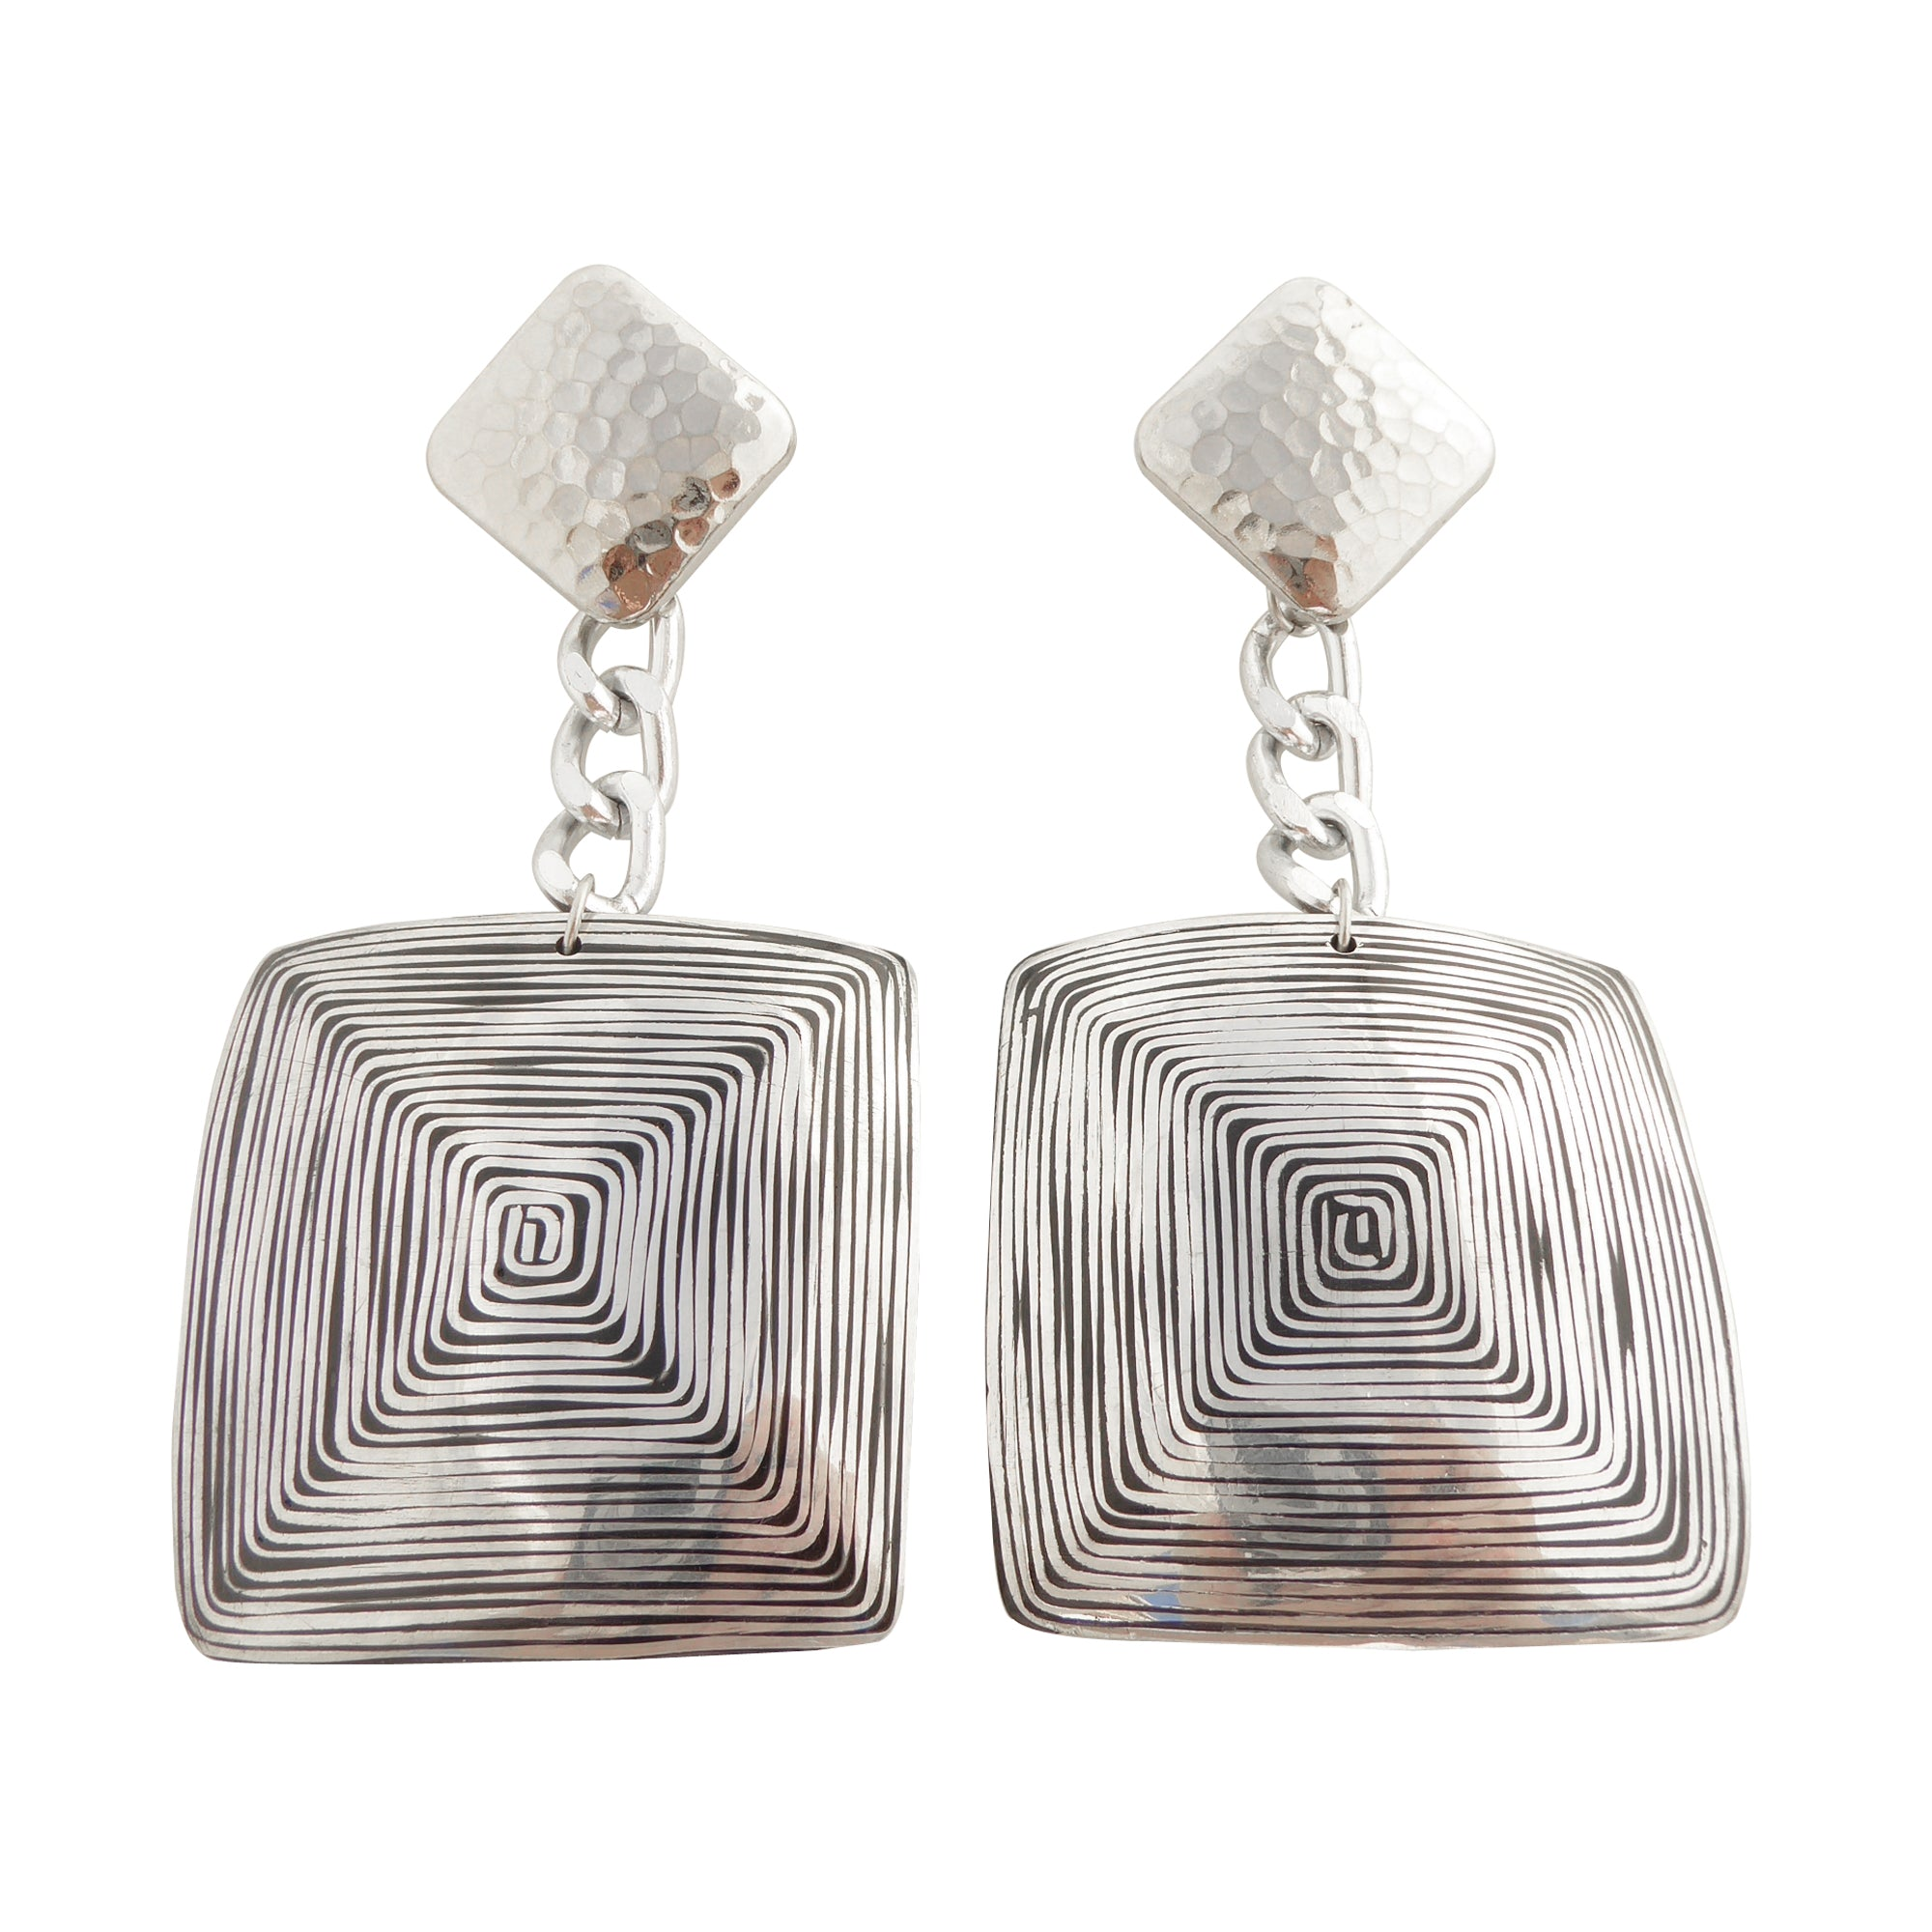 Fizza geometric earrings